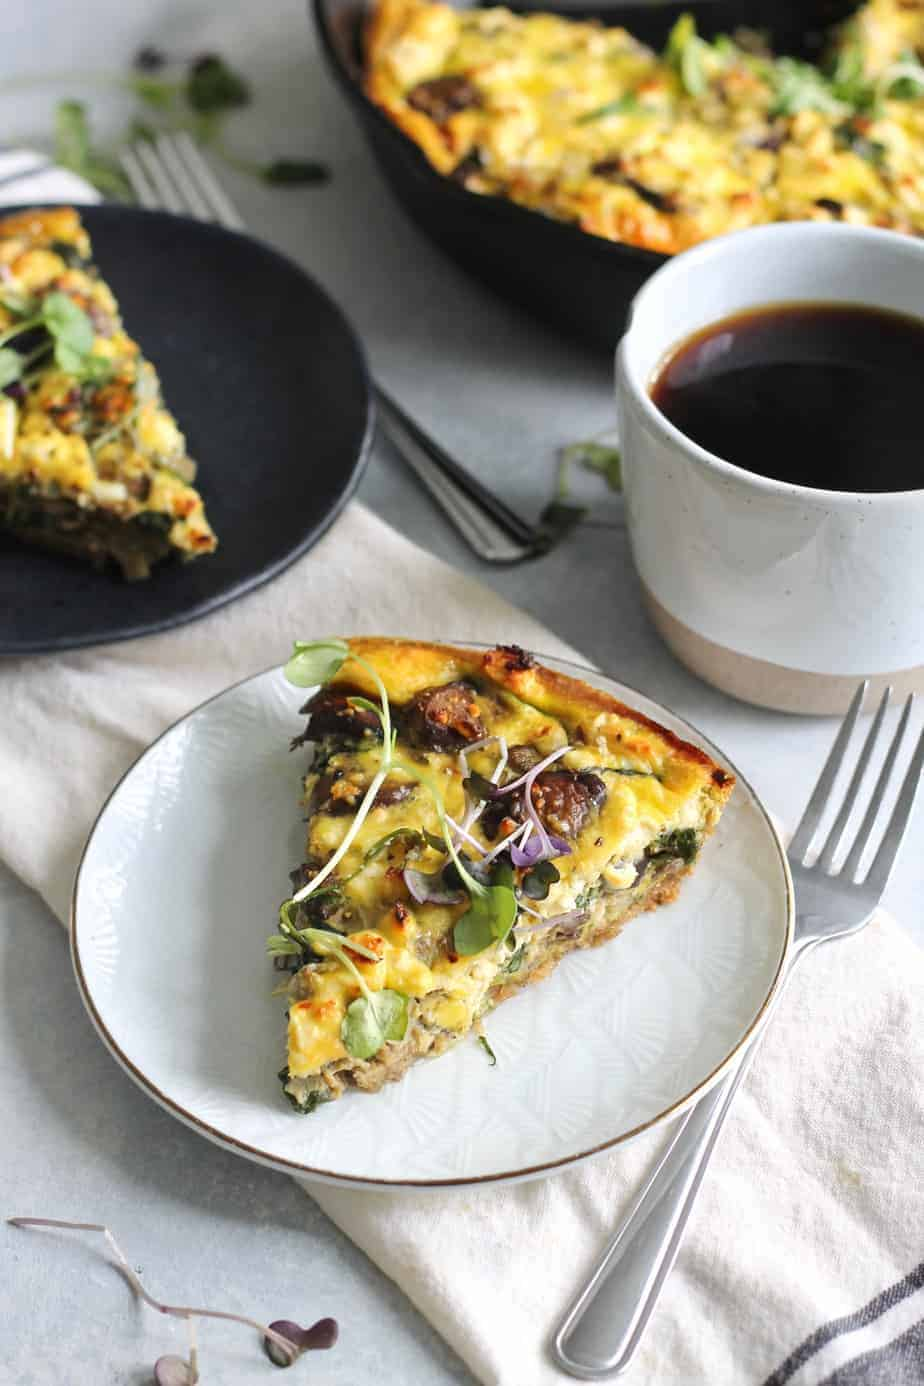 Spinach, Mushroom and Artichoke Quiche with Spelt Crust